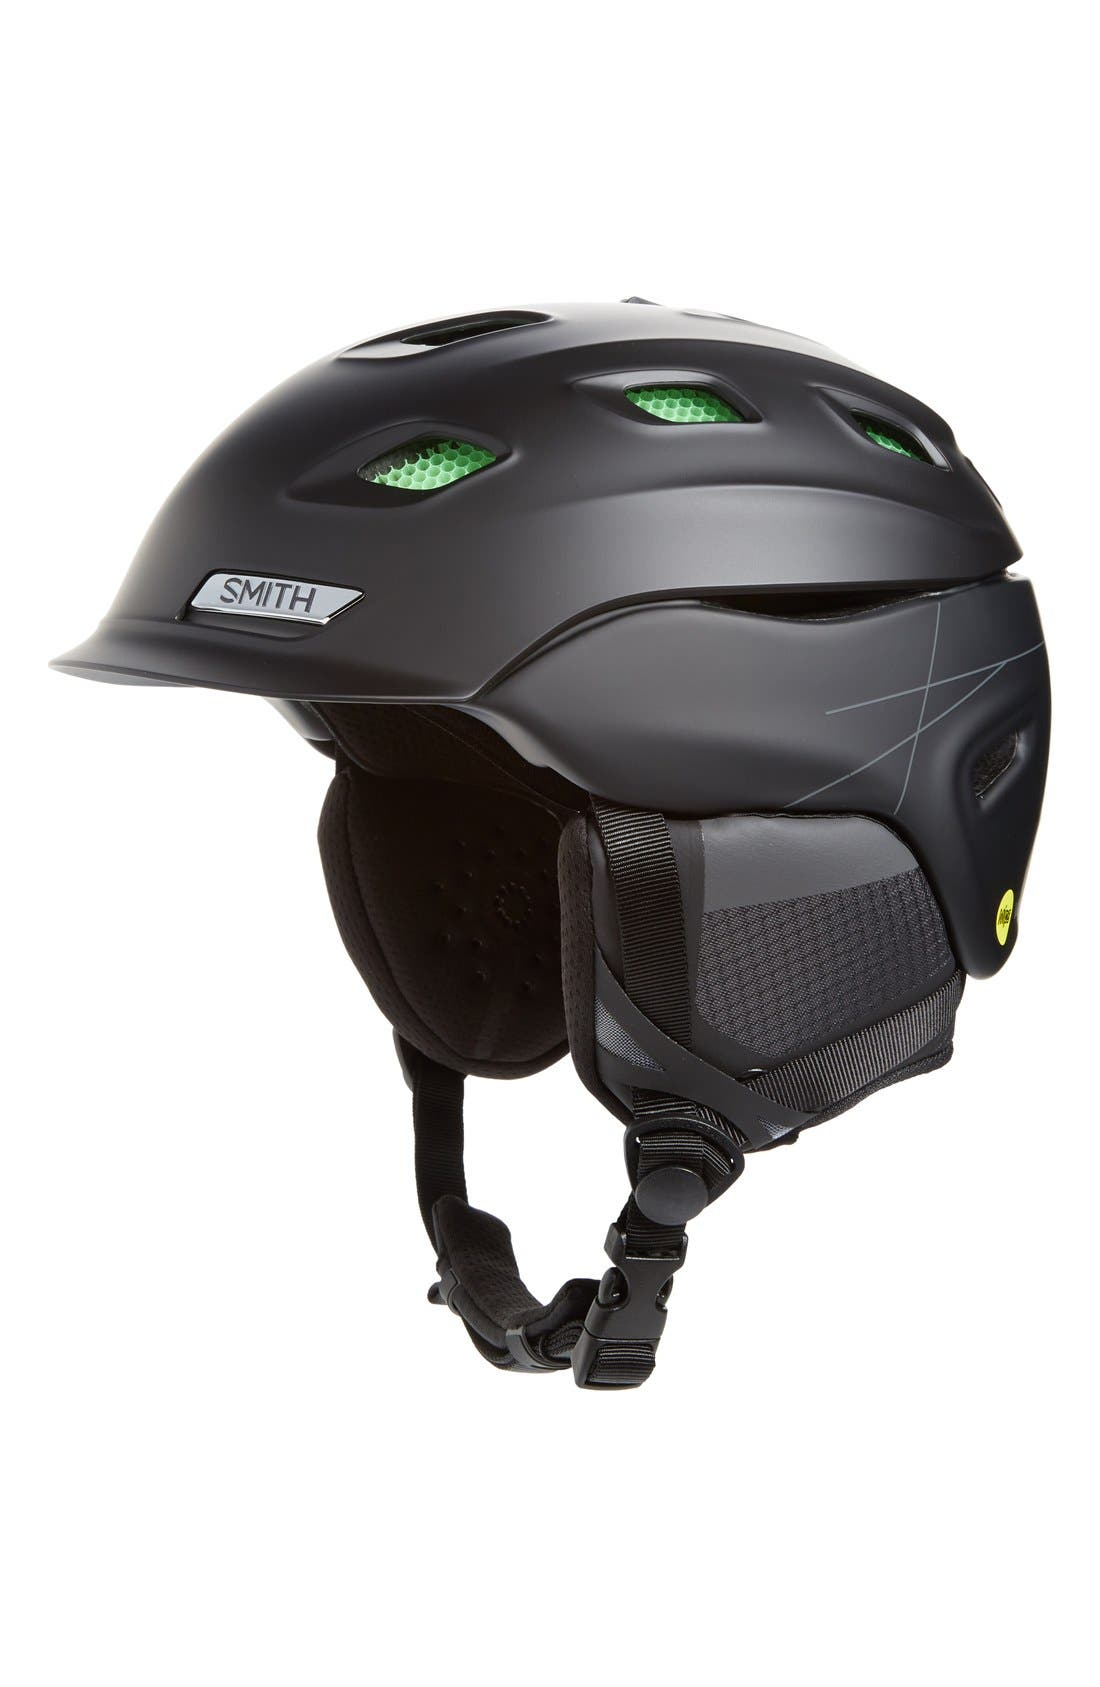 SMITH Vantage Snow Helmet with MIPS